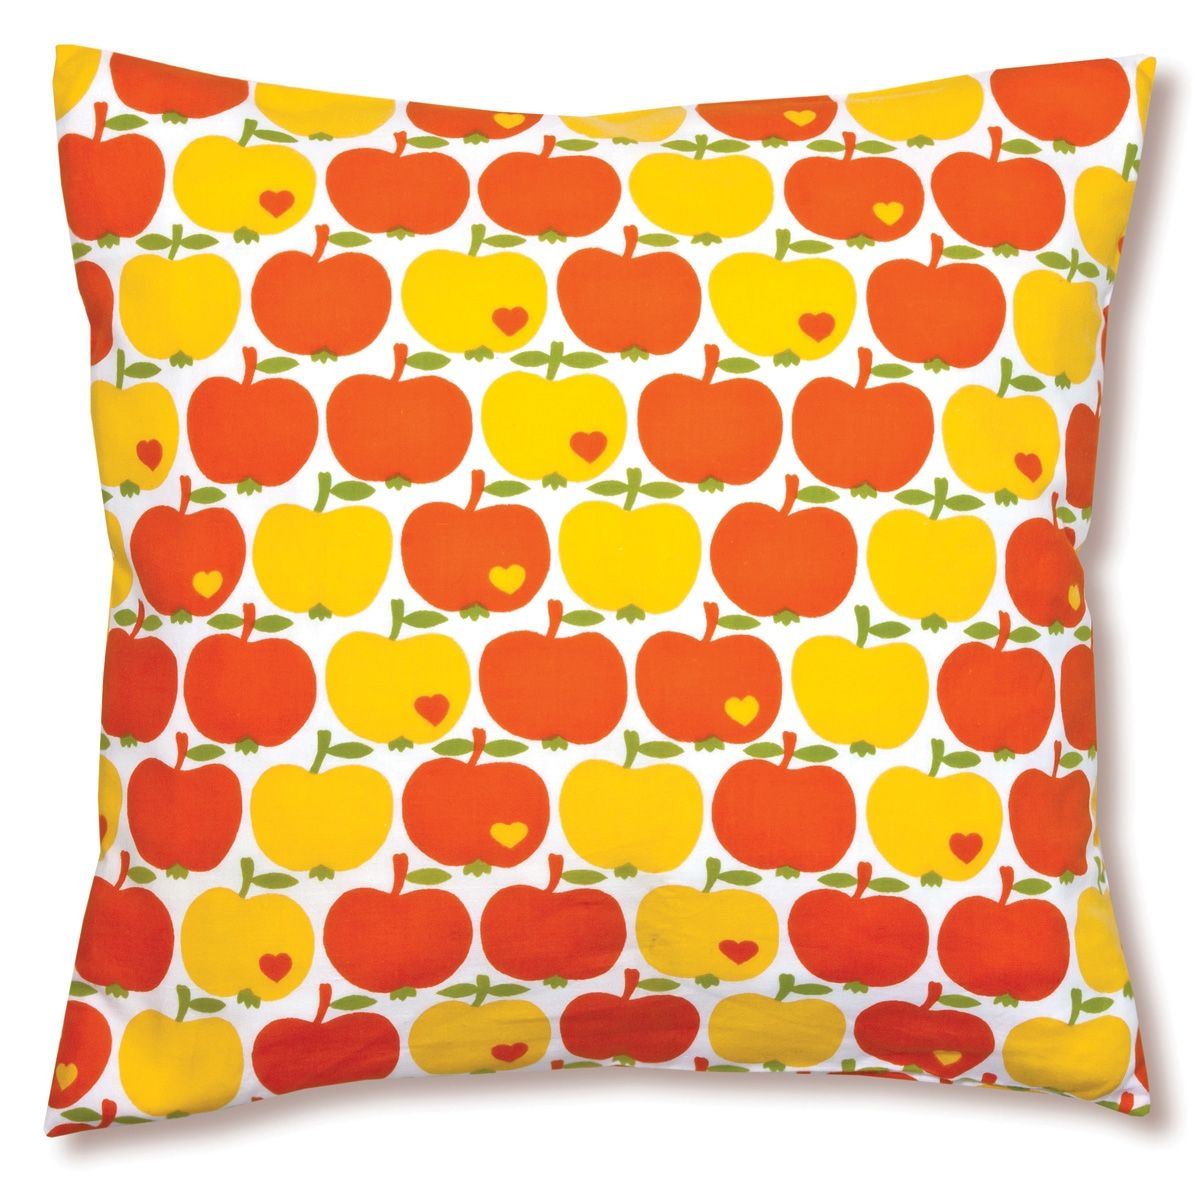 Apfel Kissenbezug Orange Apple Pillow Case In Orange Matches